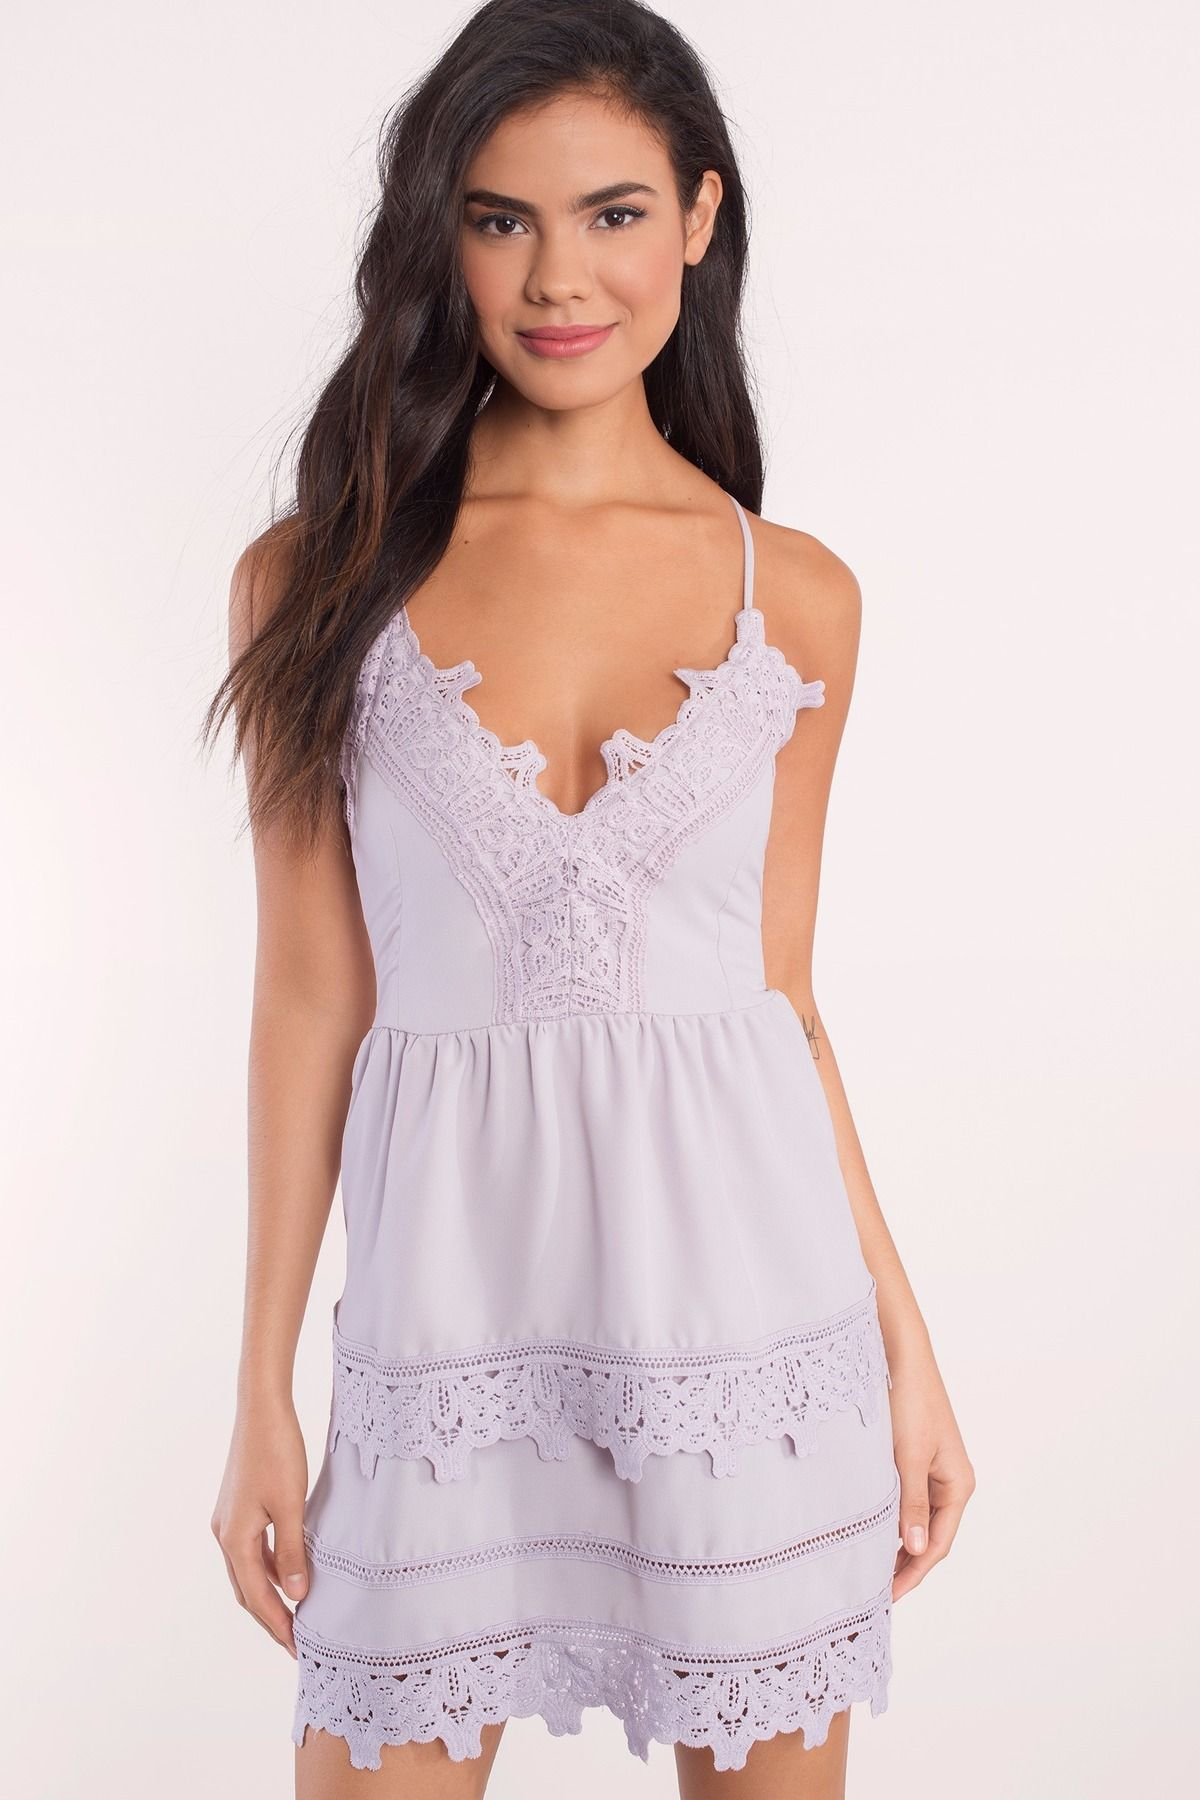 3f2e3e59d0eab Add the Truly Yours Skater Dress to your closet. Featuring a lace up back  detail and lace trim. Pair with heels and statement jewelry.